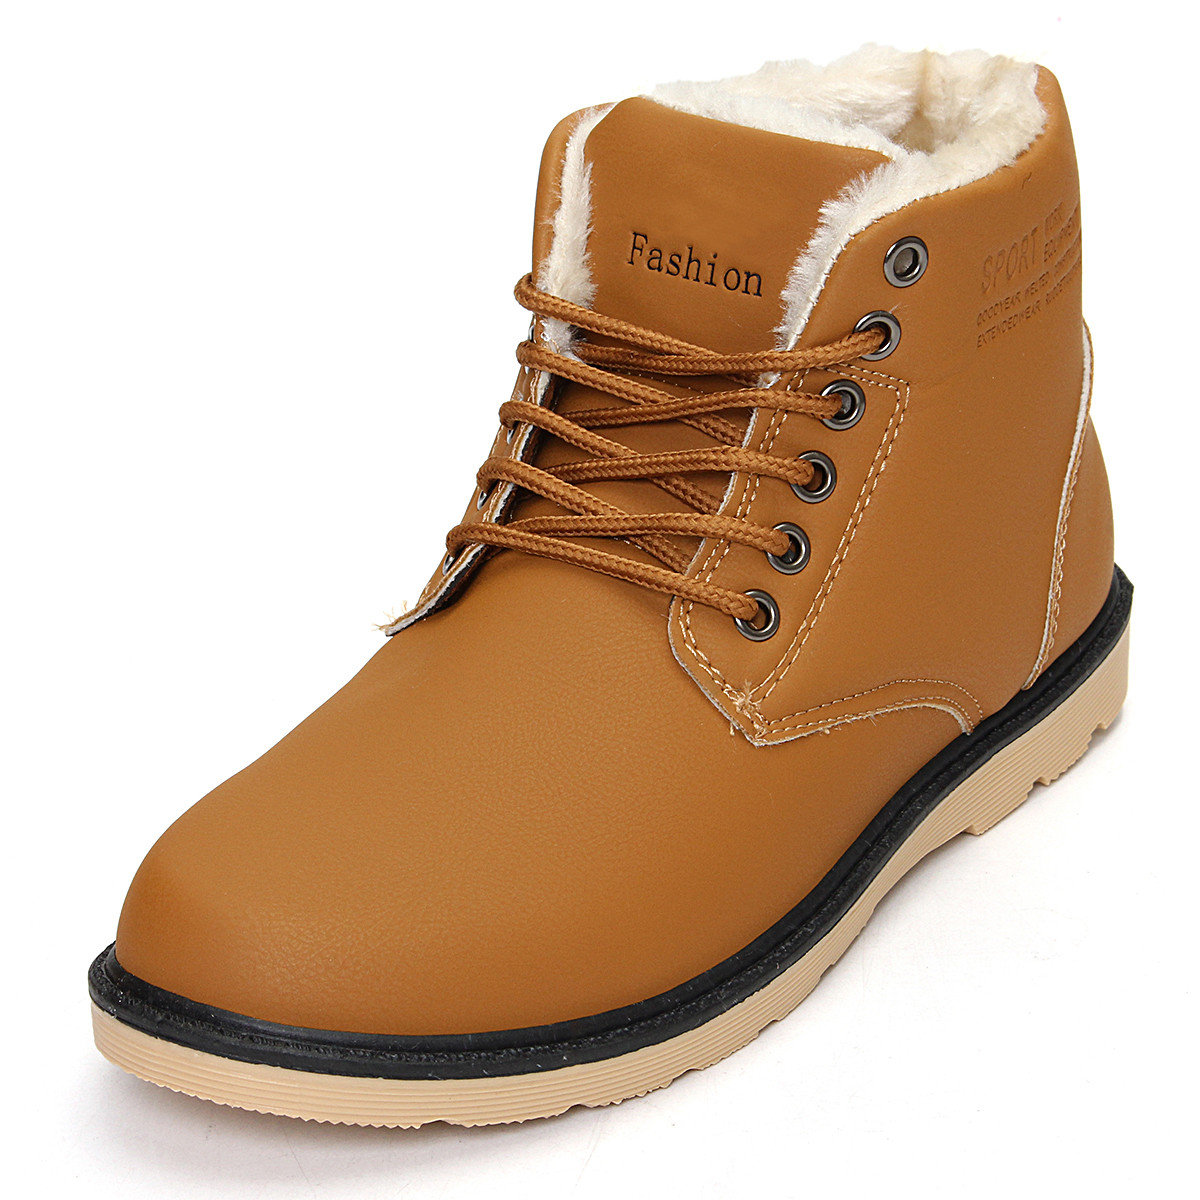 Warm Plush Lining Lace Up Winter Ankle Boots For Men